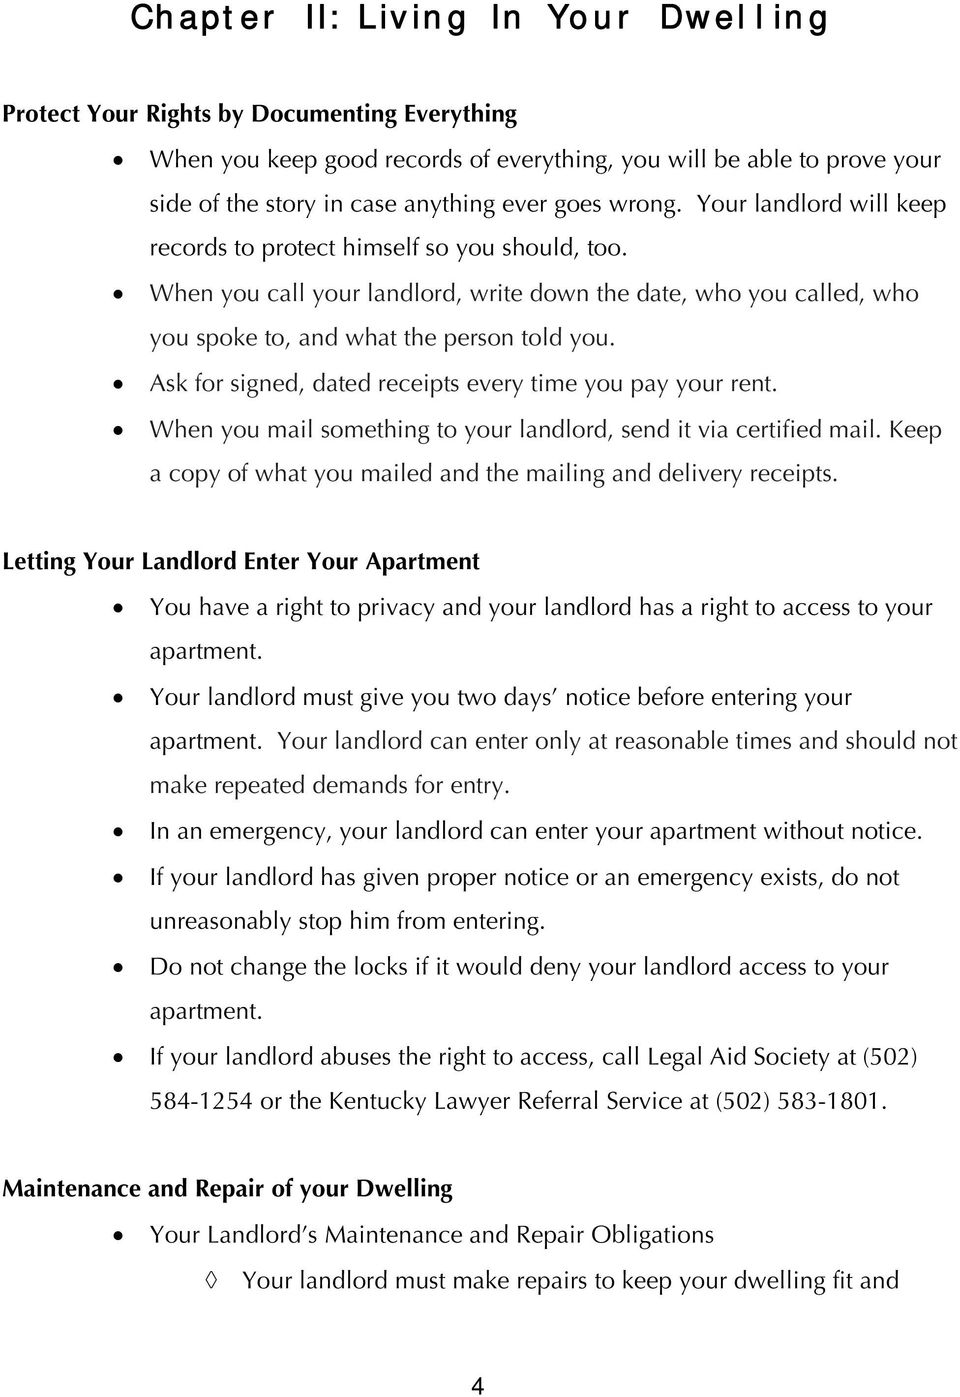 Ask for signed, dated receipts every time you pay your rent. When you mail something to your landlord, send it via certified mail. Keep a copy of what you mailed and the mailing and delivery receipts.